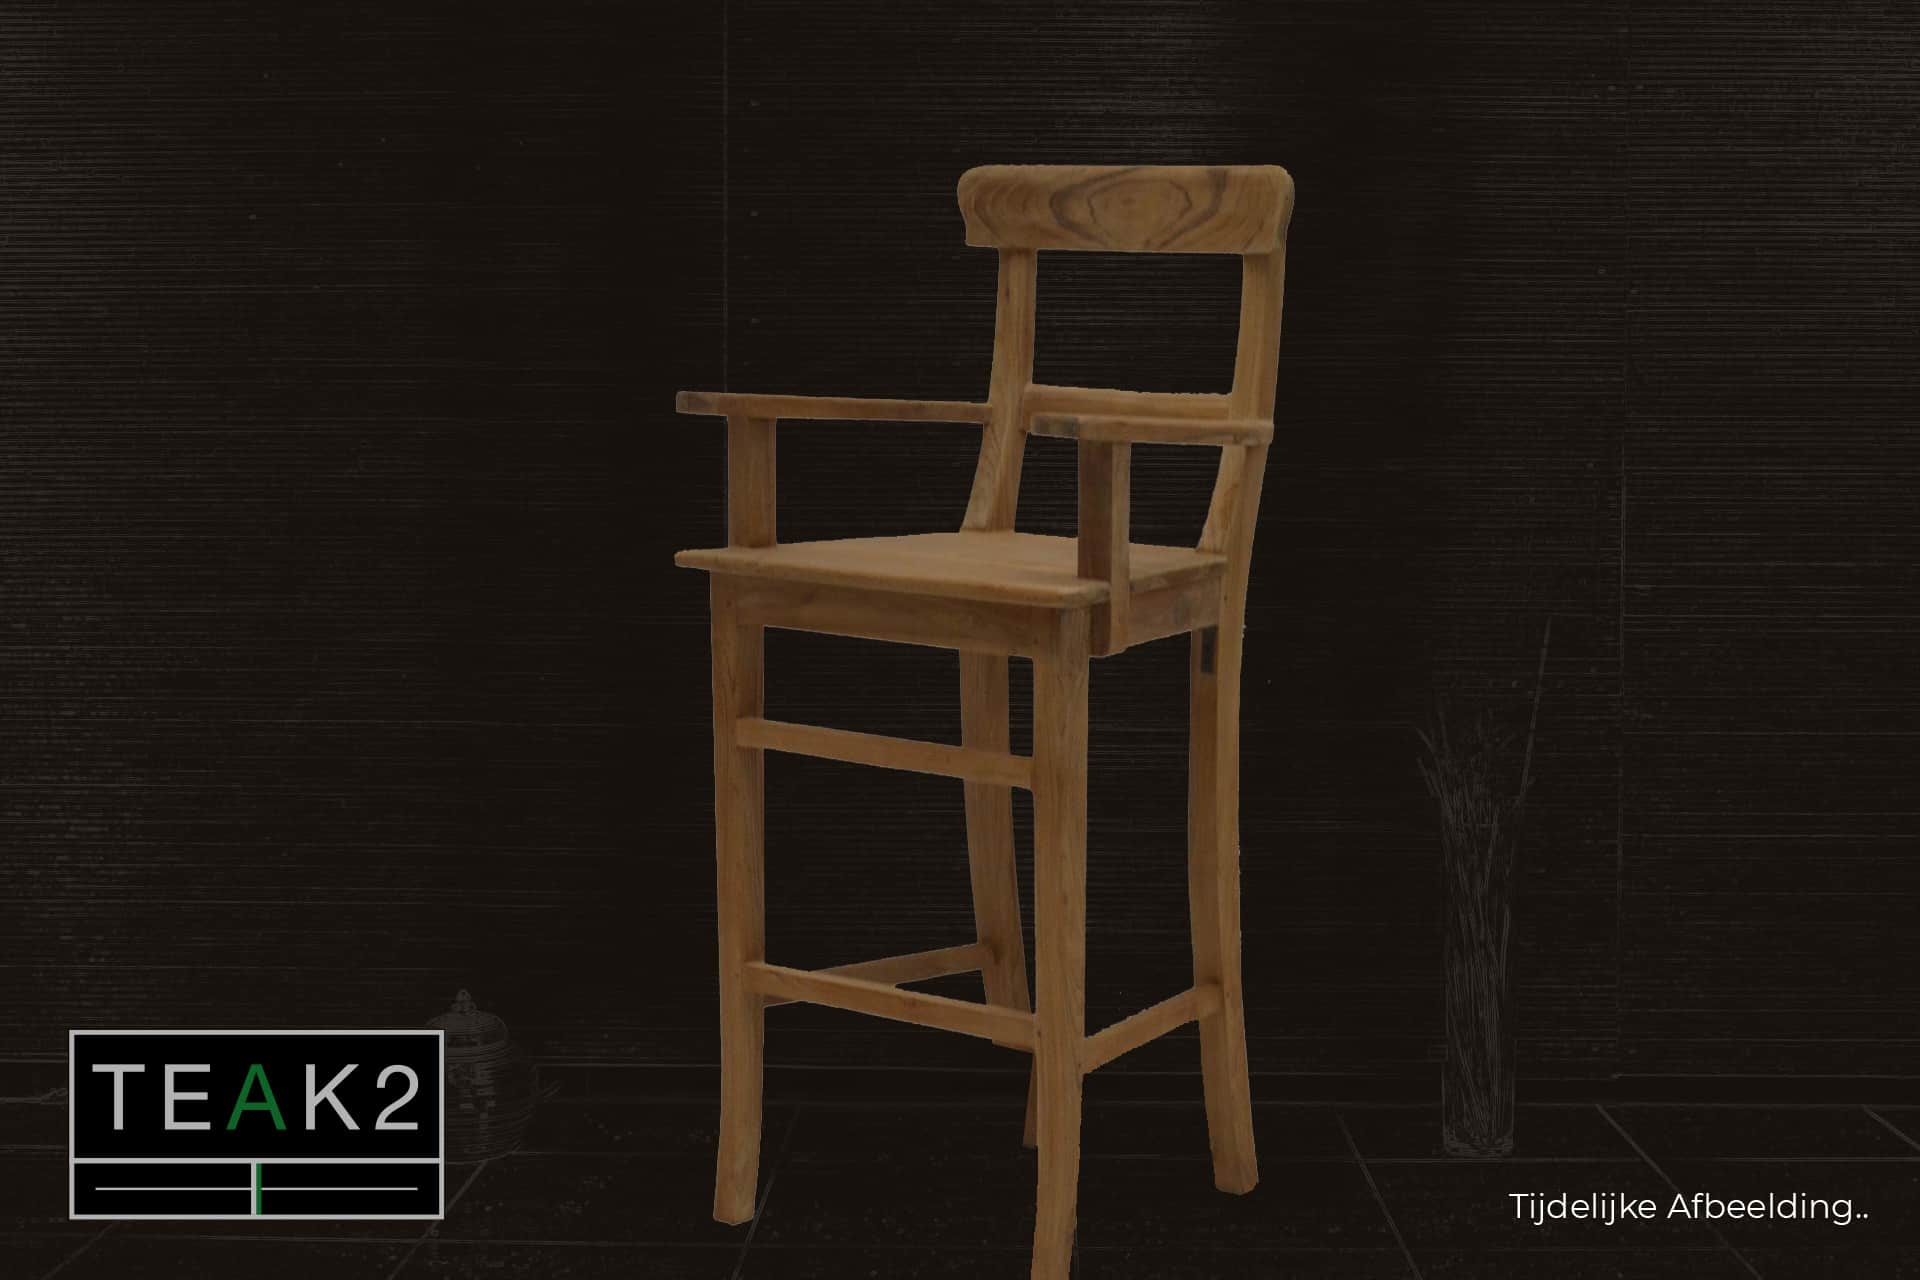 Bar stool Teak Kursi Old Arm | rural teak bar stool with armrest in brushed old teak. Quality from Indonesia, sturdy stool - TEAK2.